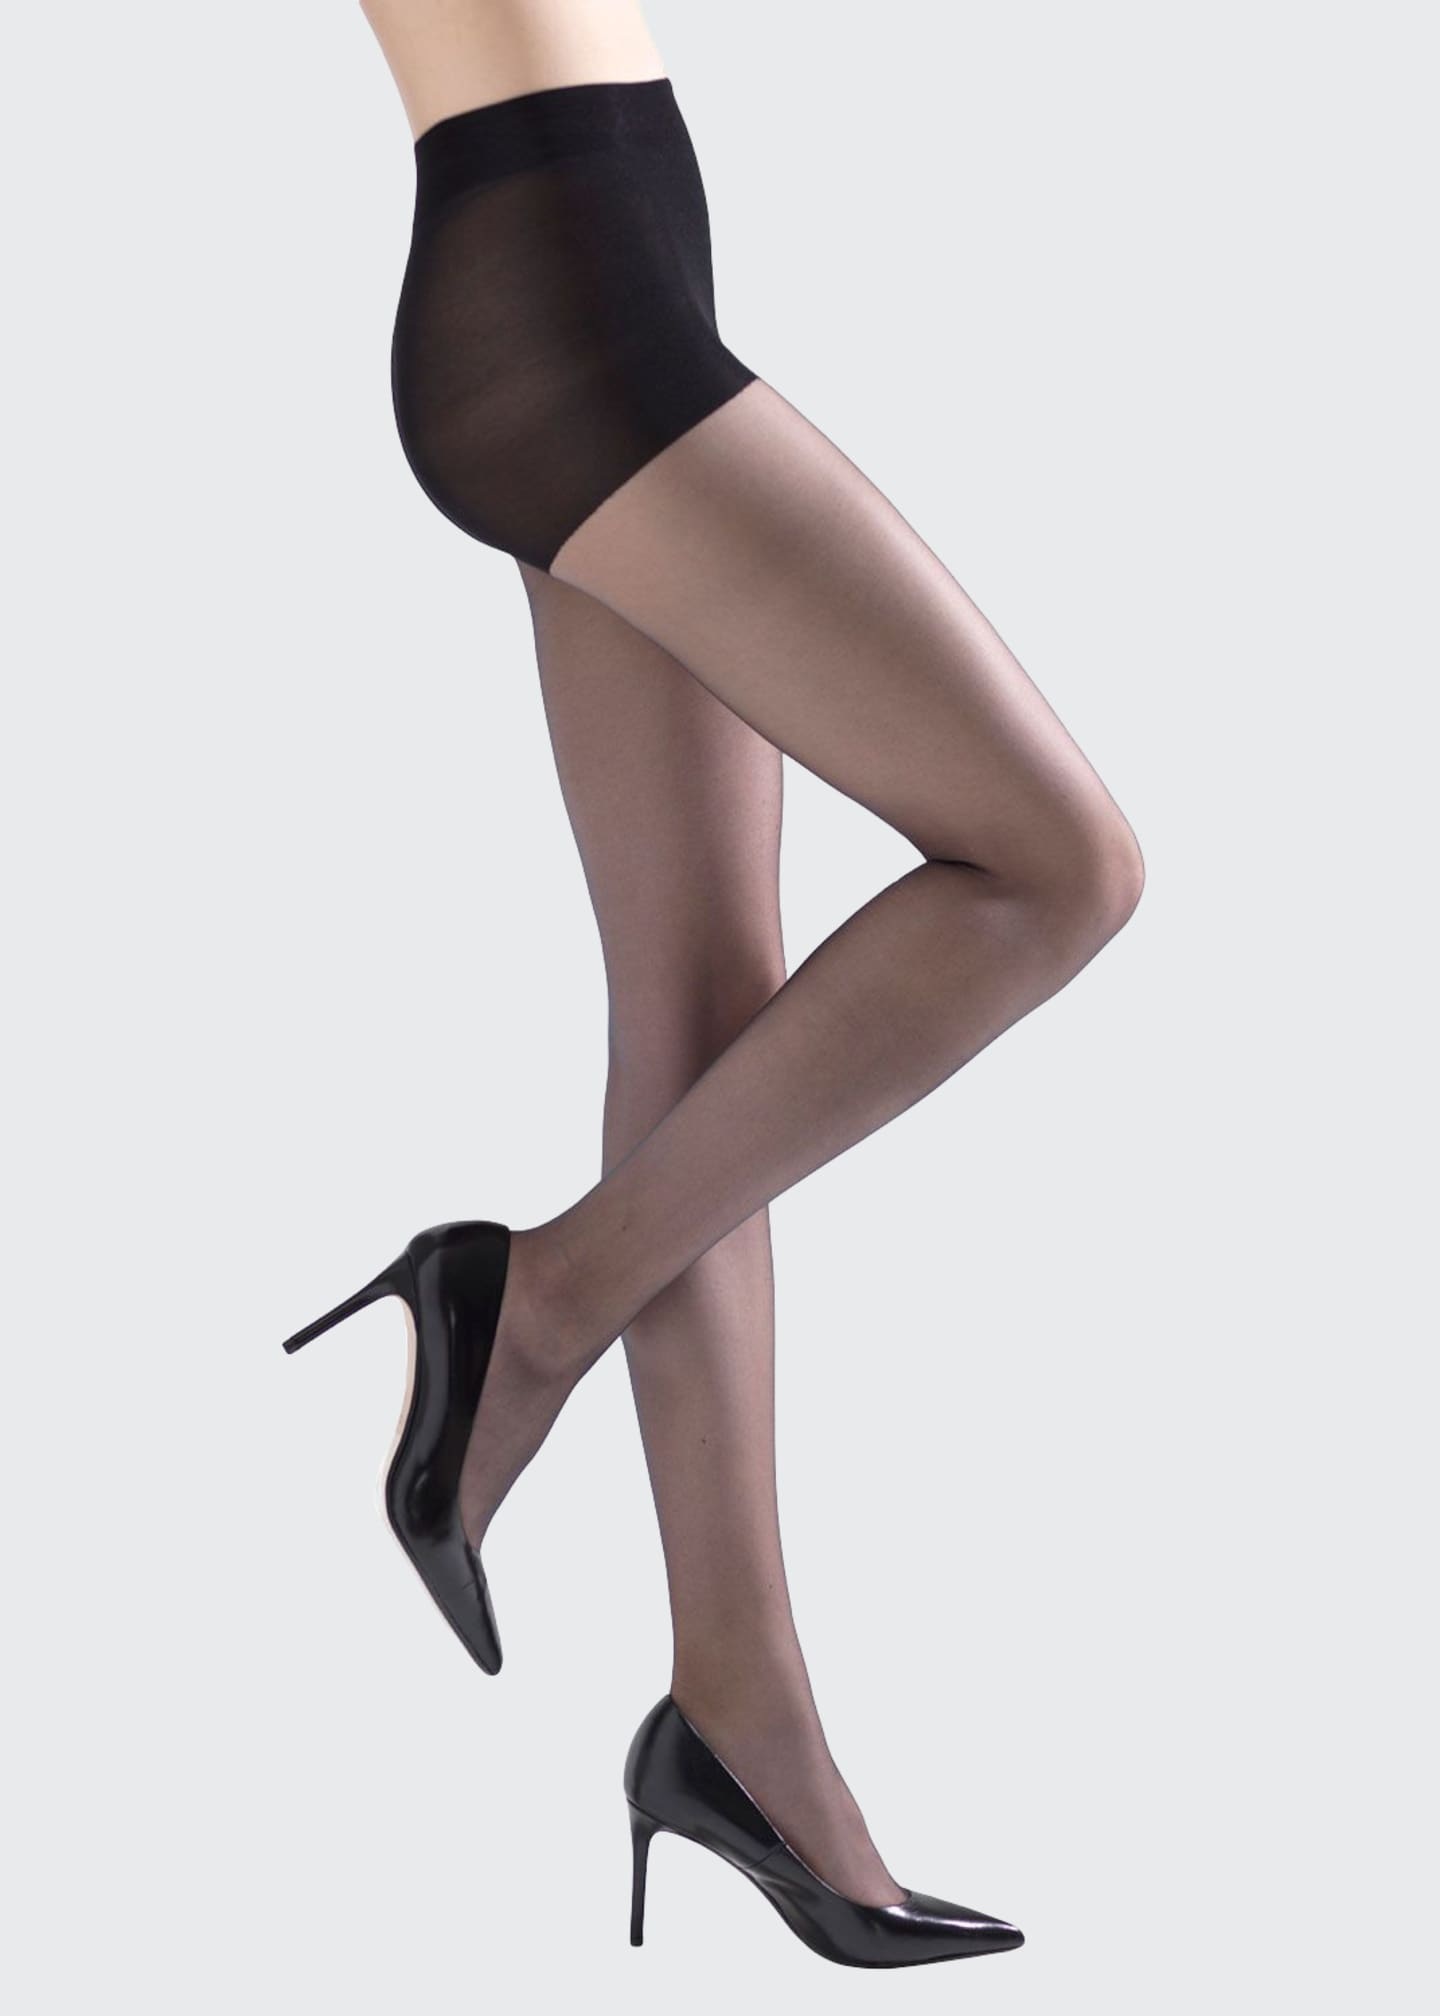 Natori 2-Pack Soft Suede Ultra Sheer Control-Top Tights